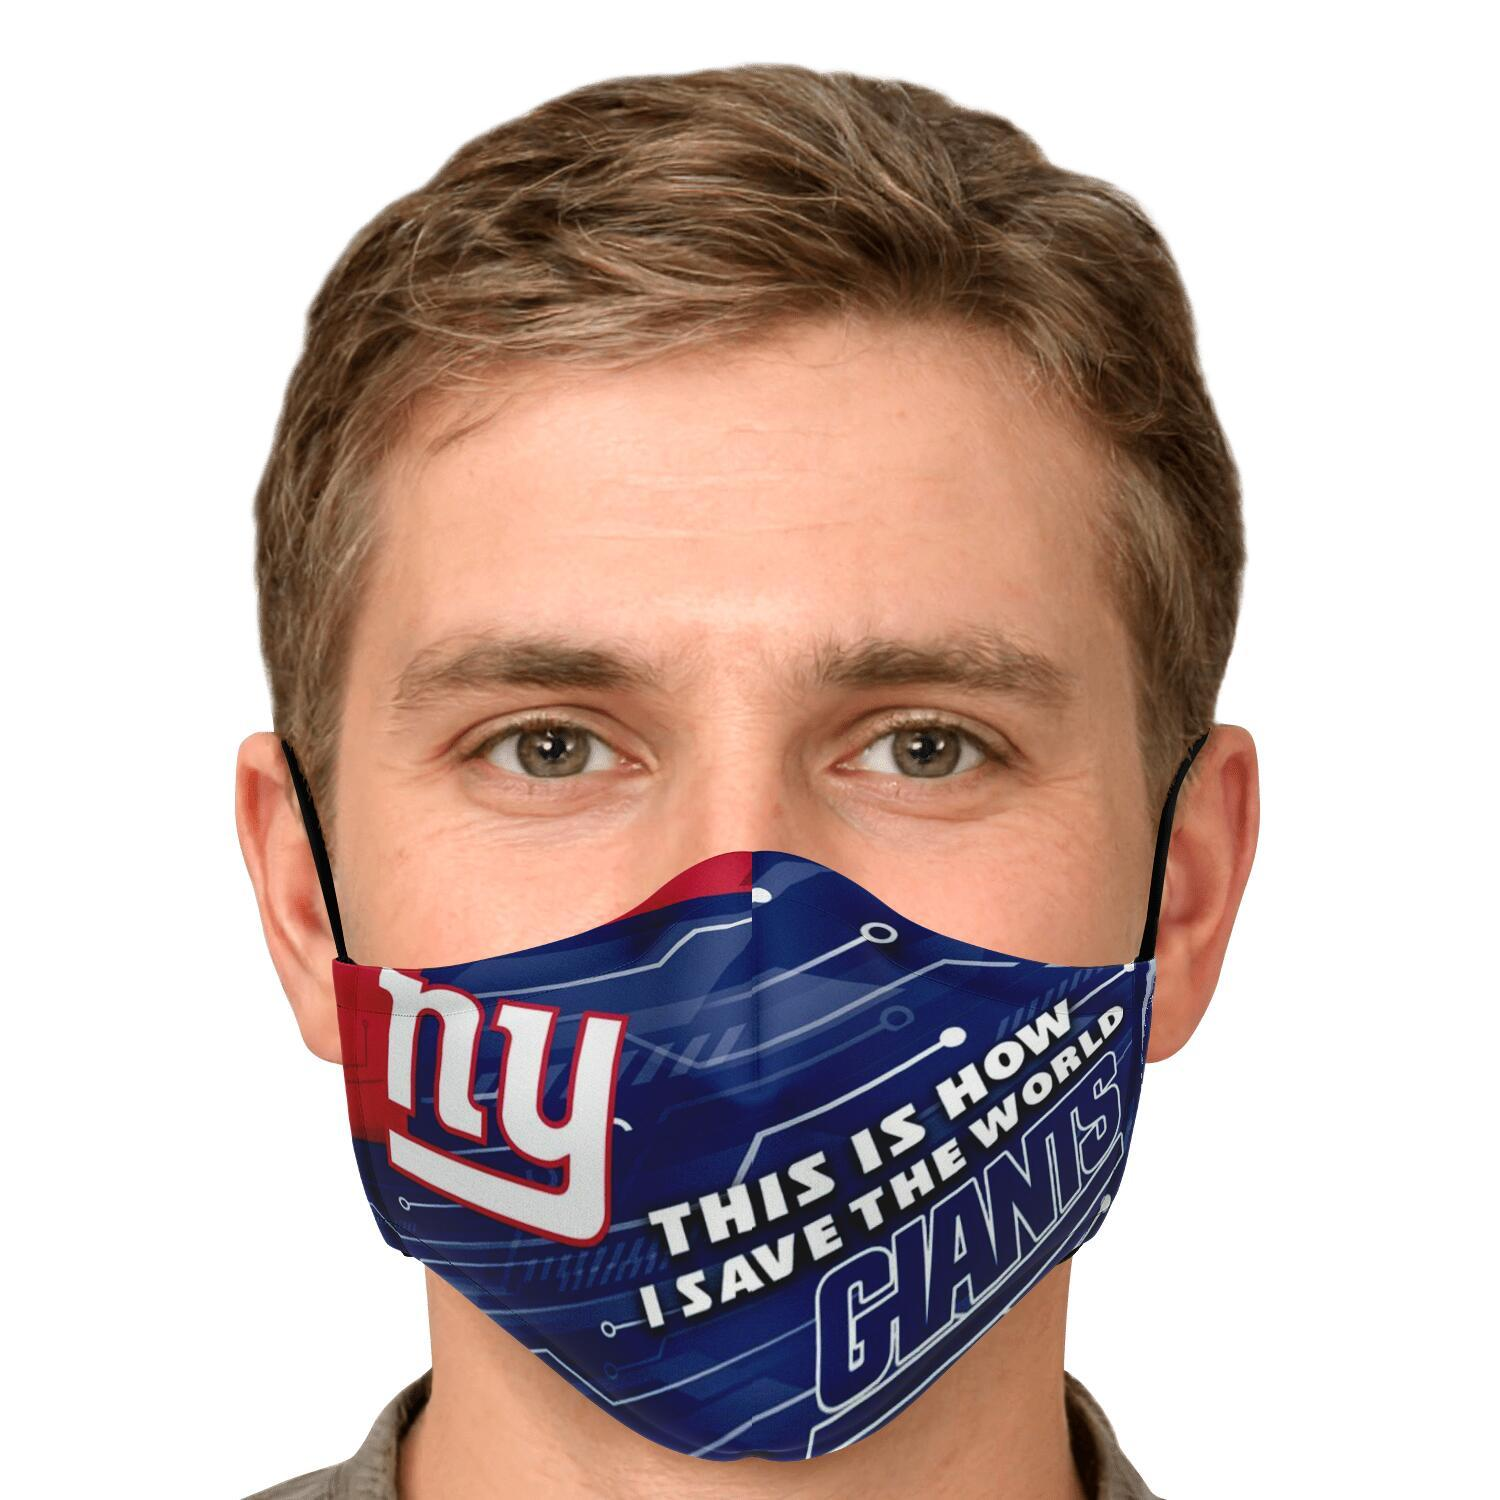 This Is How I Save The World New York Giants Face Masks 4